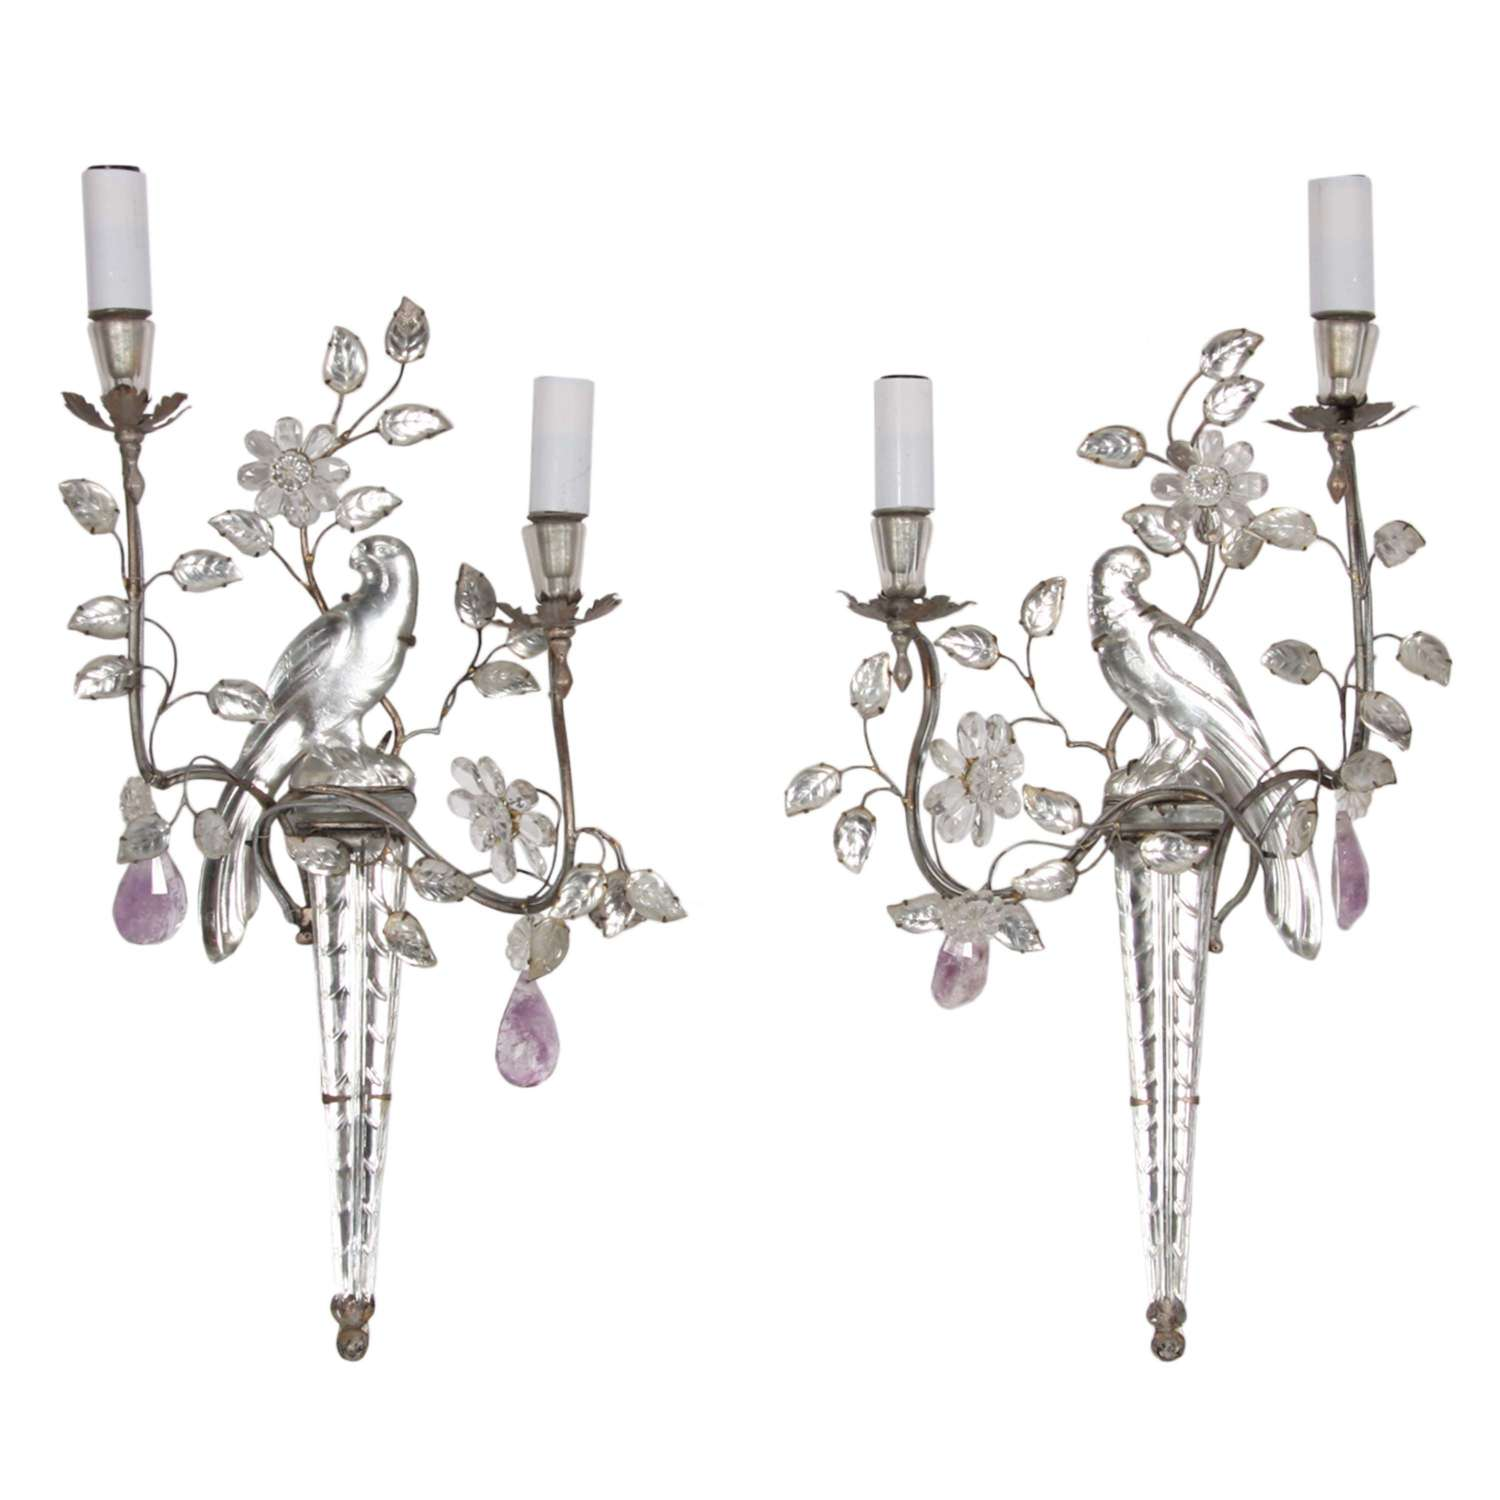 Pair of Maison Baguès Parrot and Torch Wall Sconces